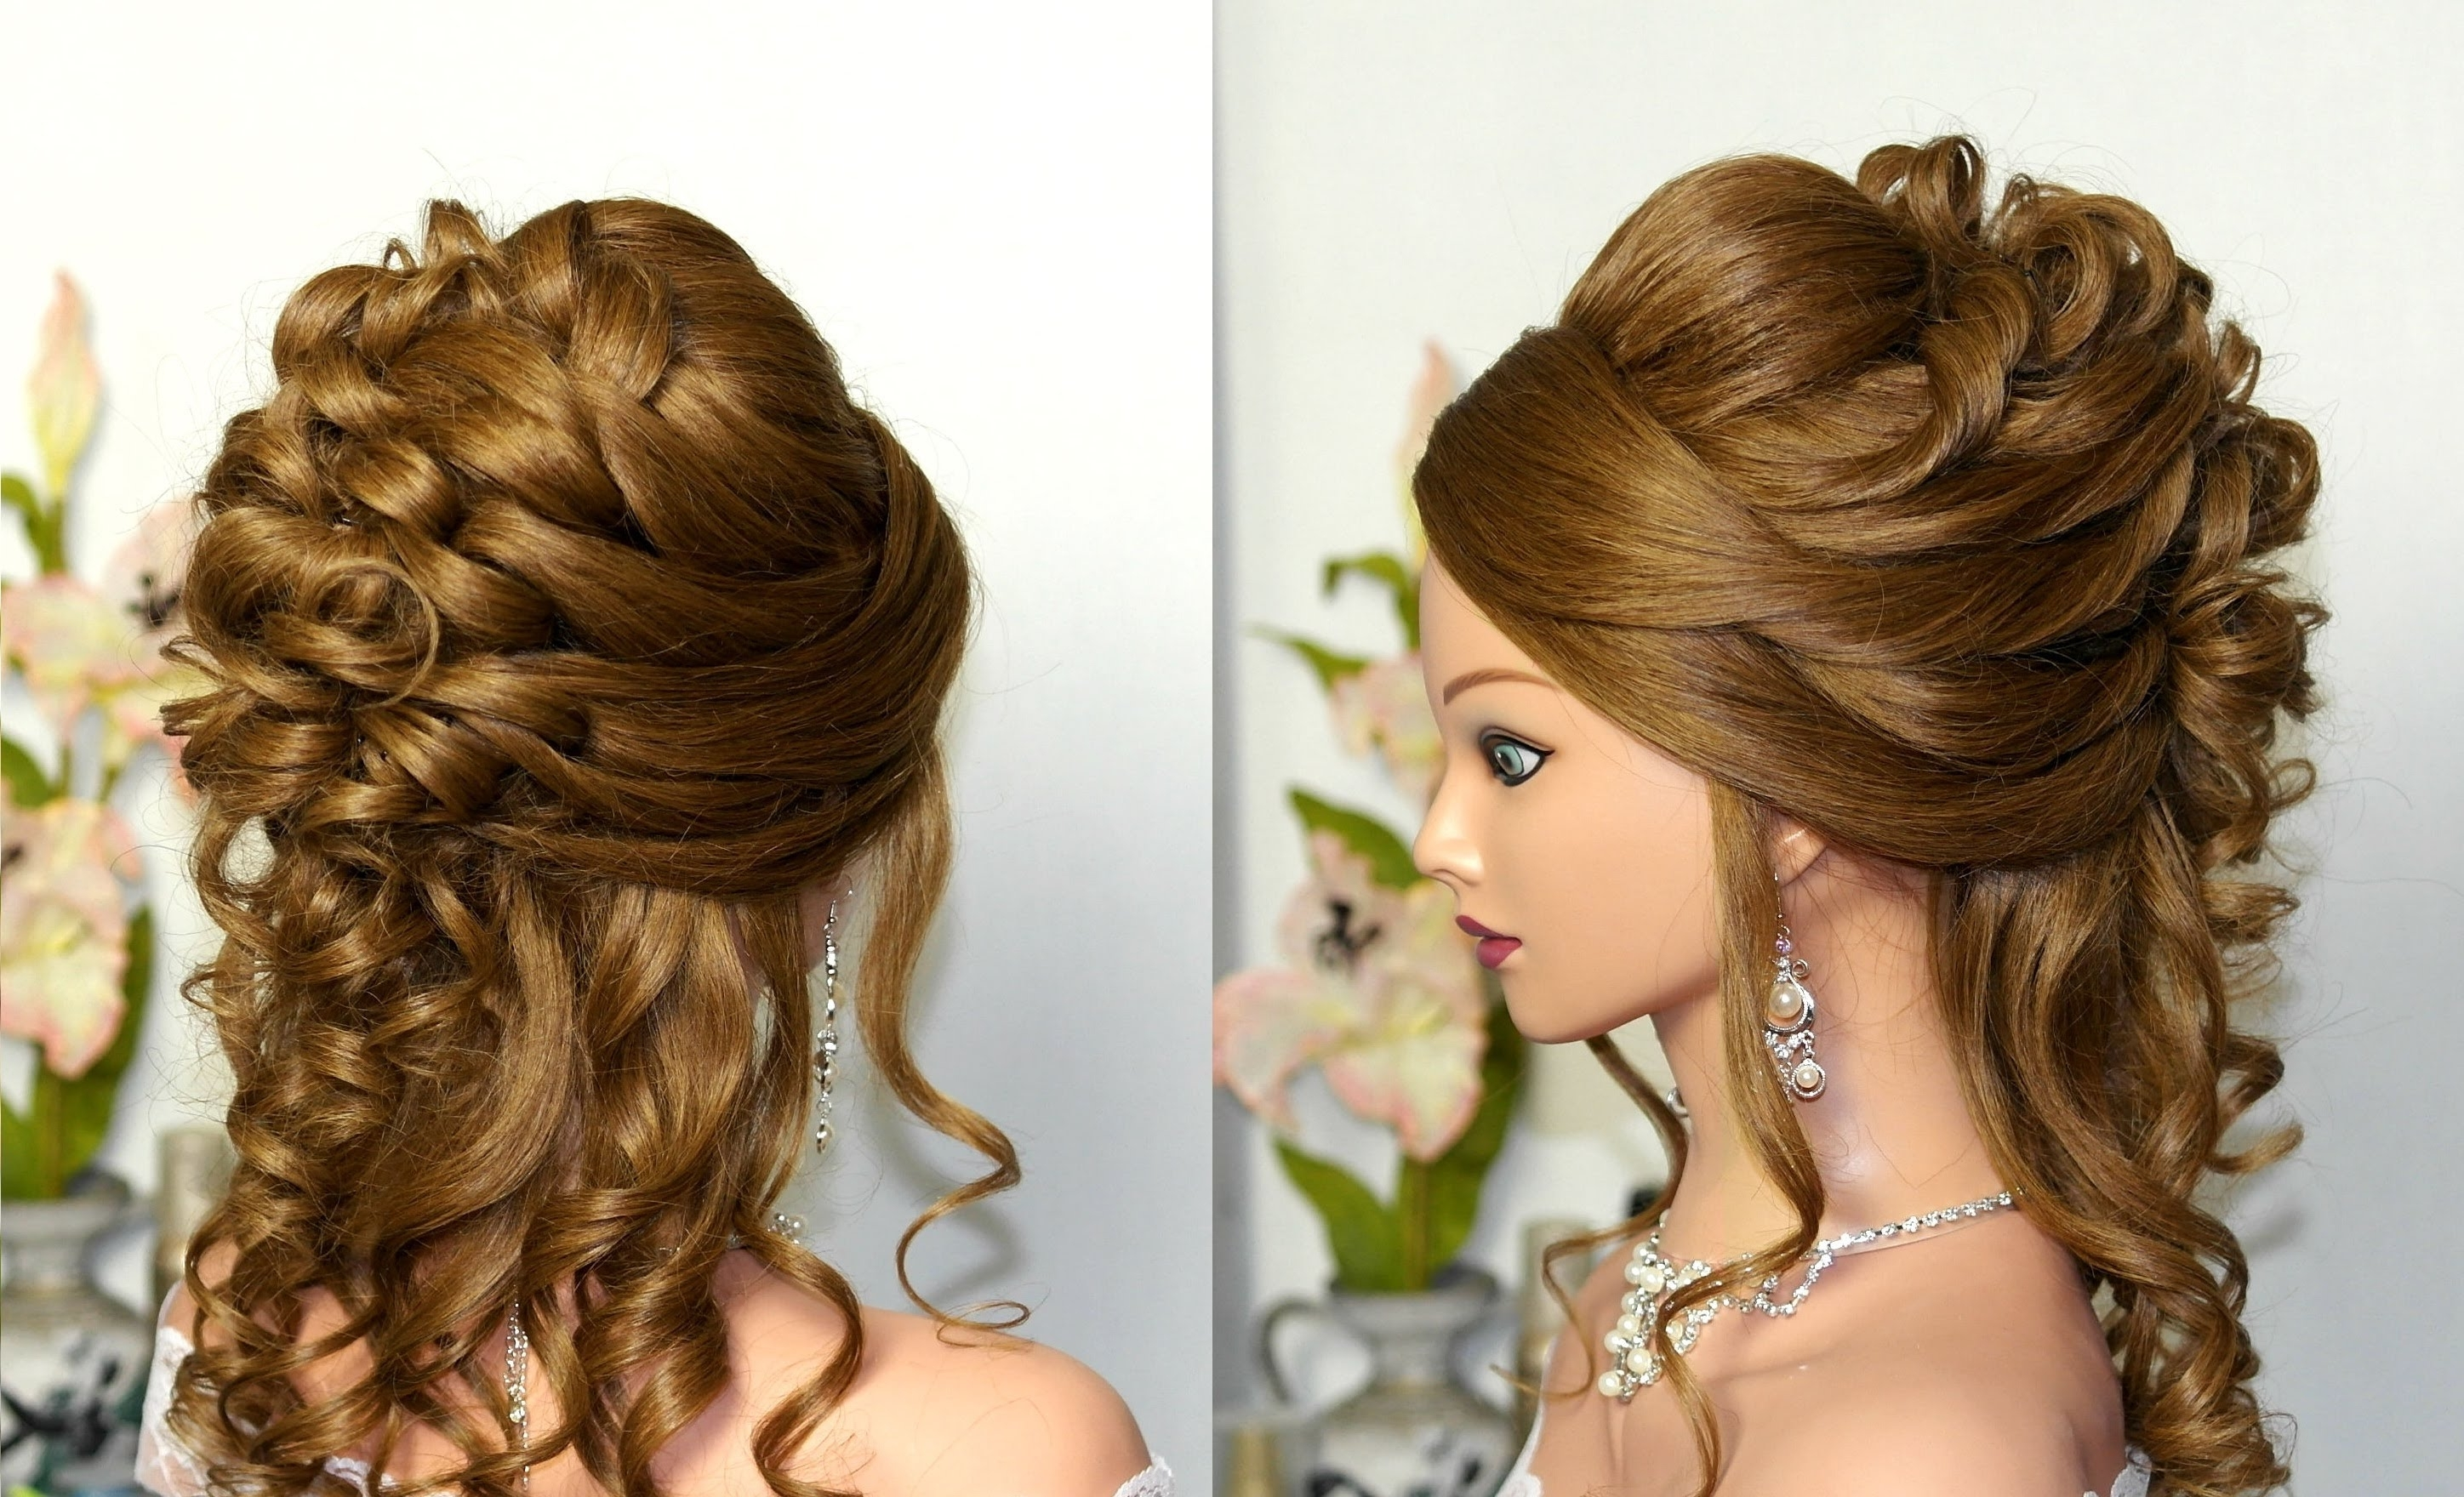 Trendy Curly Wedding Hairstyles For Curly Wedding Prom Hairstyle For Long Hair (View 6 of 15)